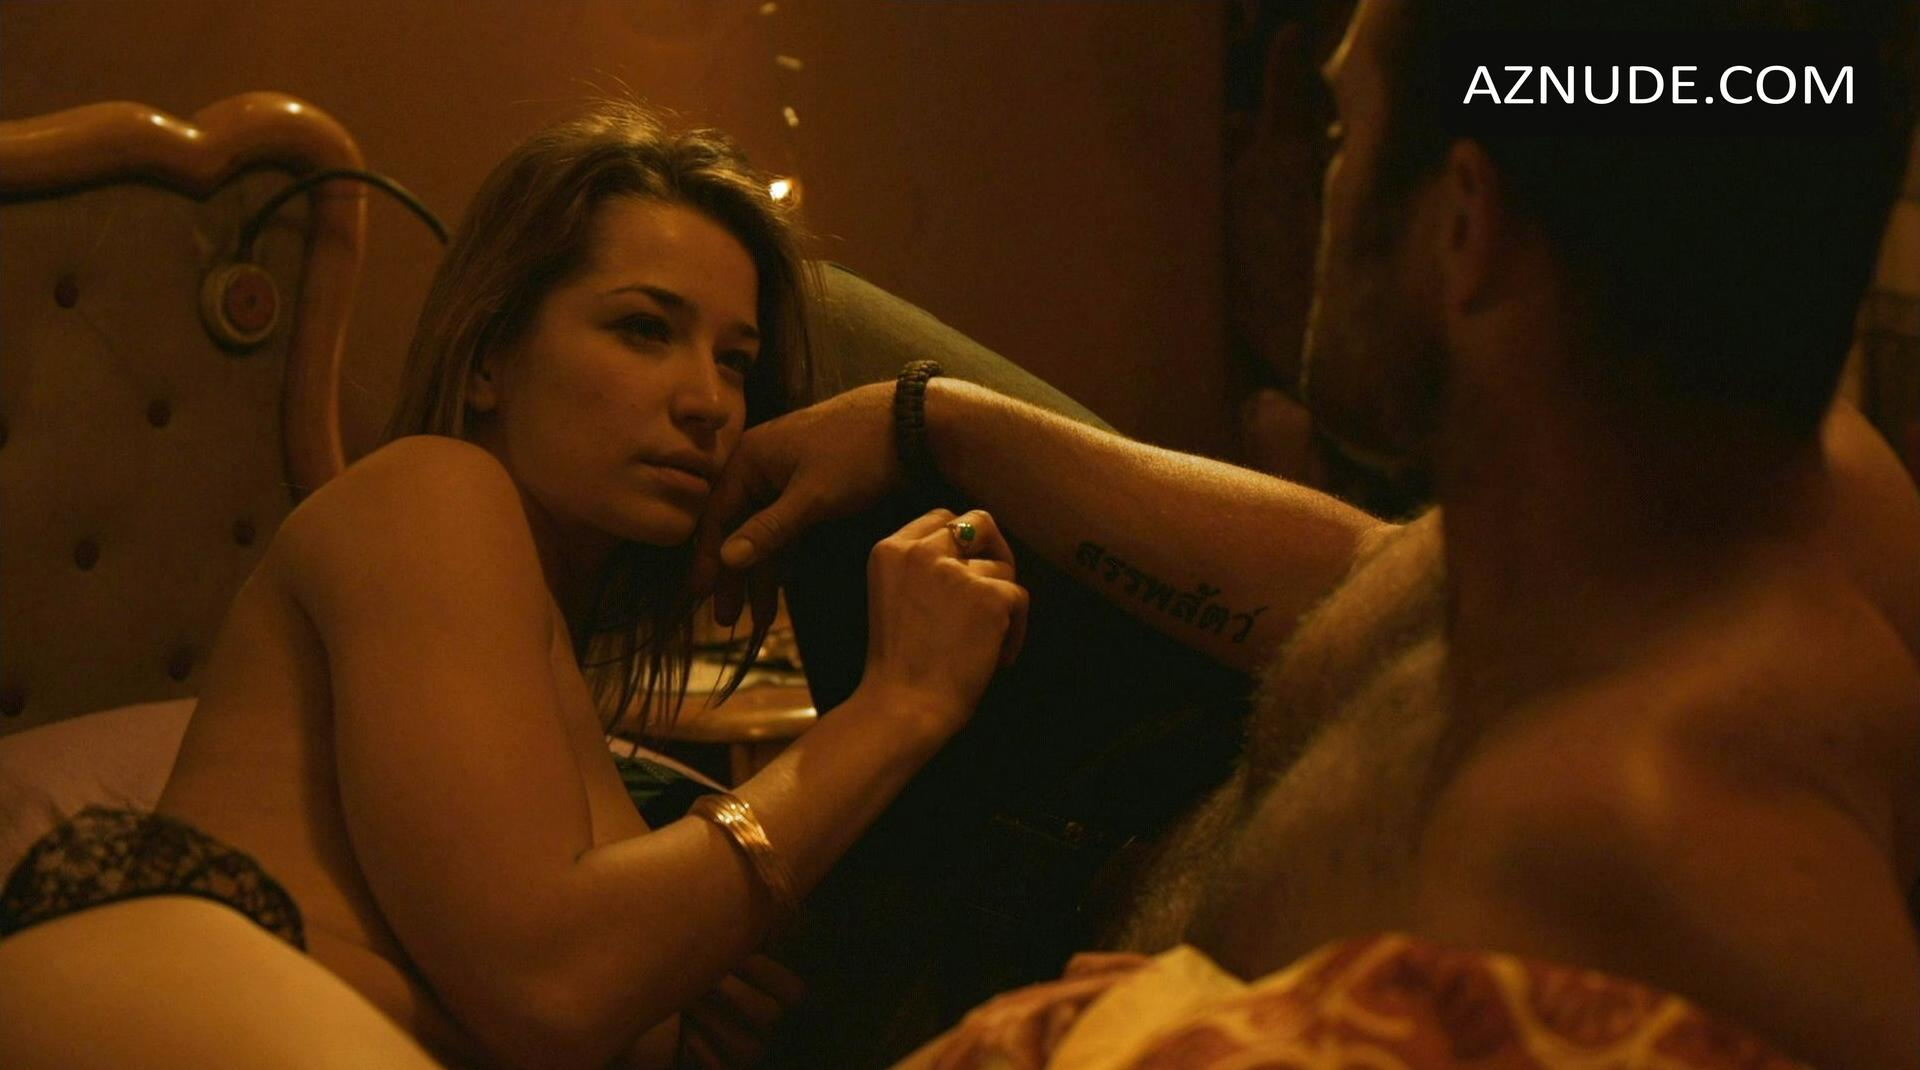 strike back nude scenes